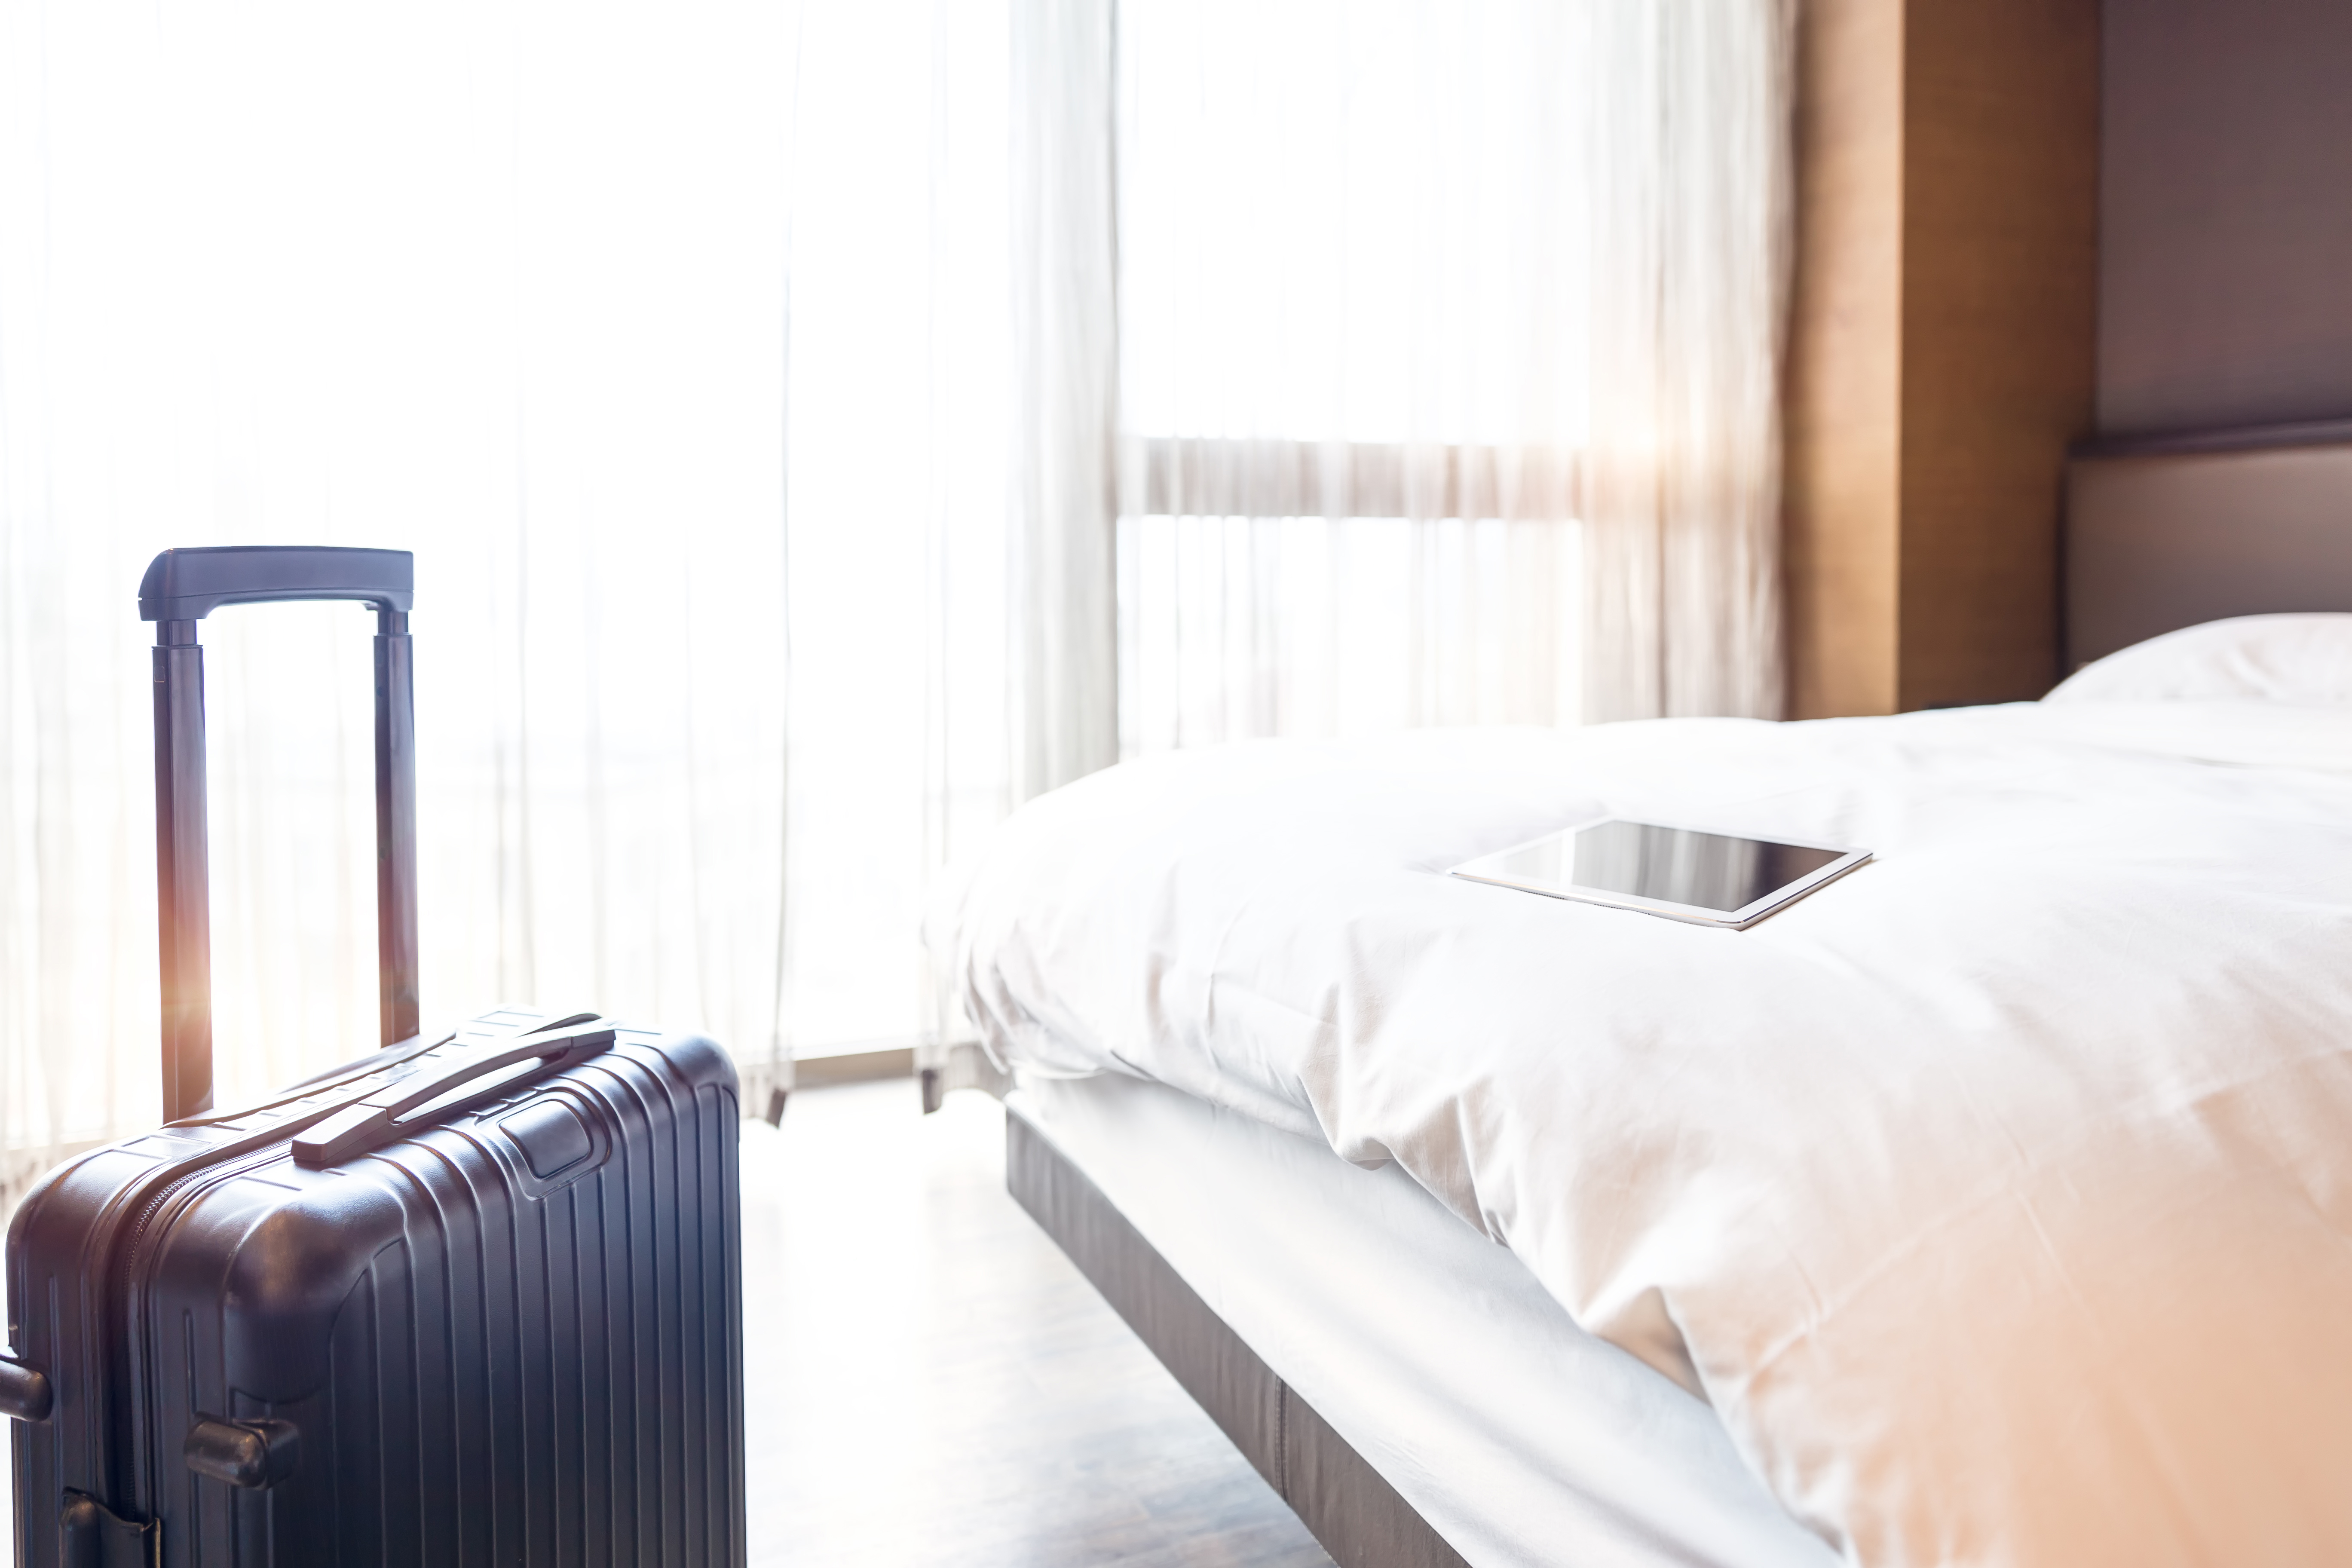 How to Get the Marriott Hotel Promotional Codes | USA Today